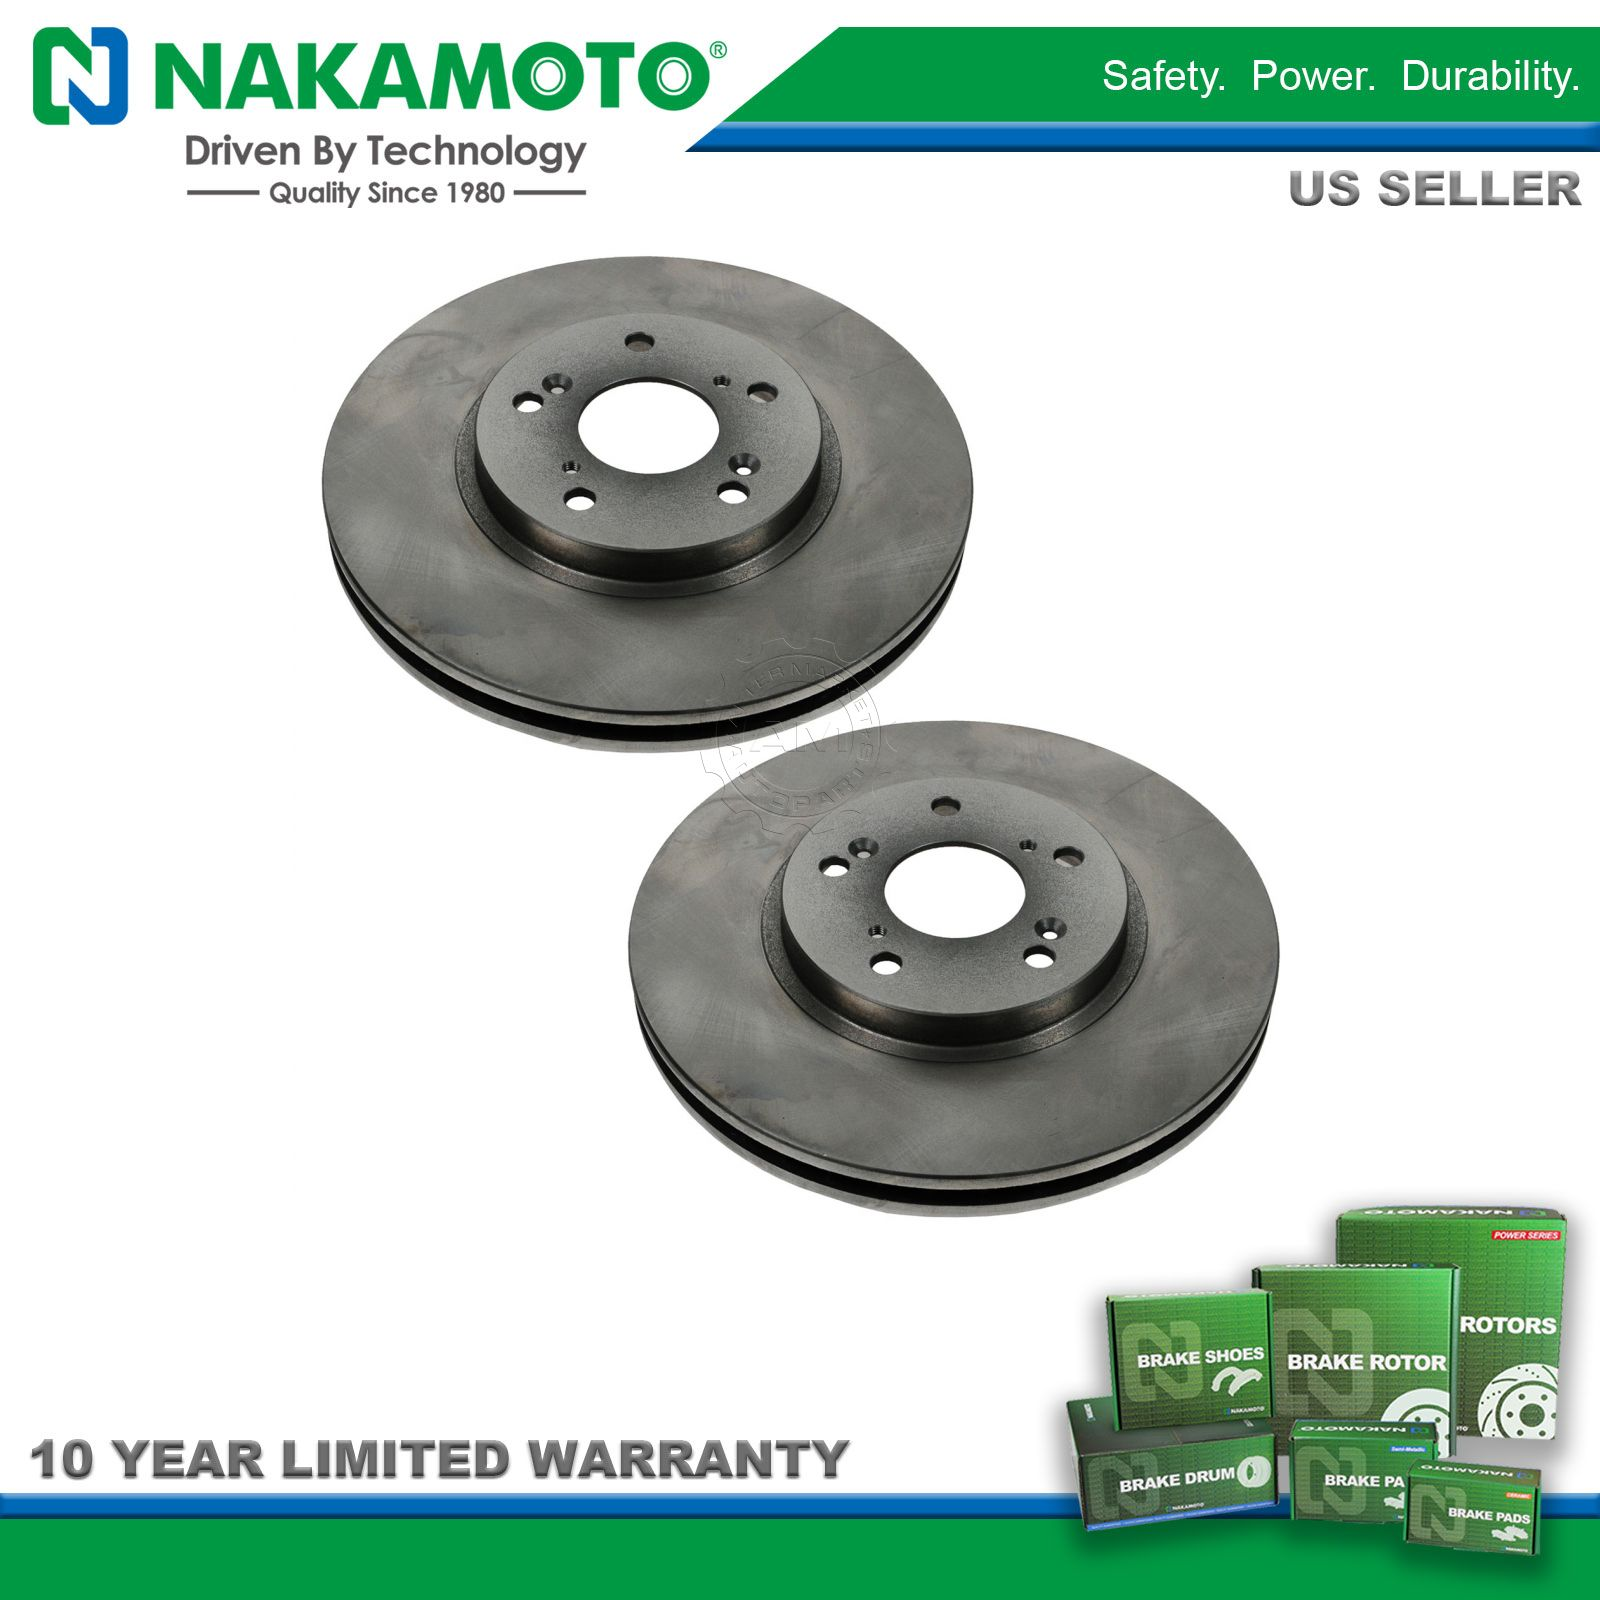 Nakamoto Front Brake Rotor Pair Set for Acura 3.2 TL CL MDX Accord Coupe  Pilot